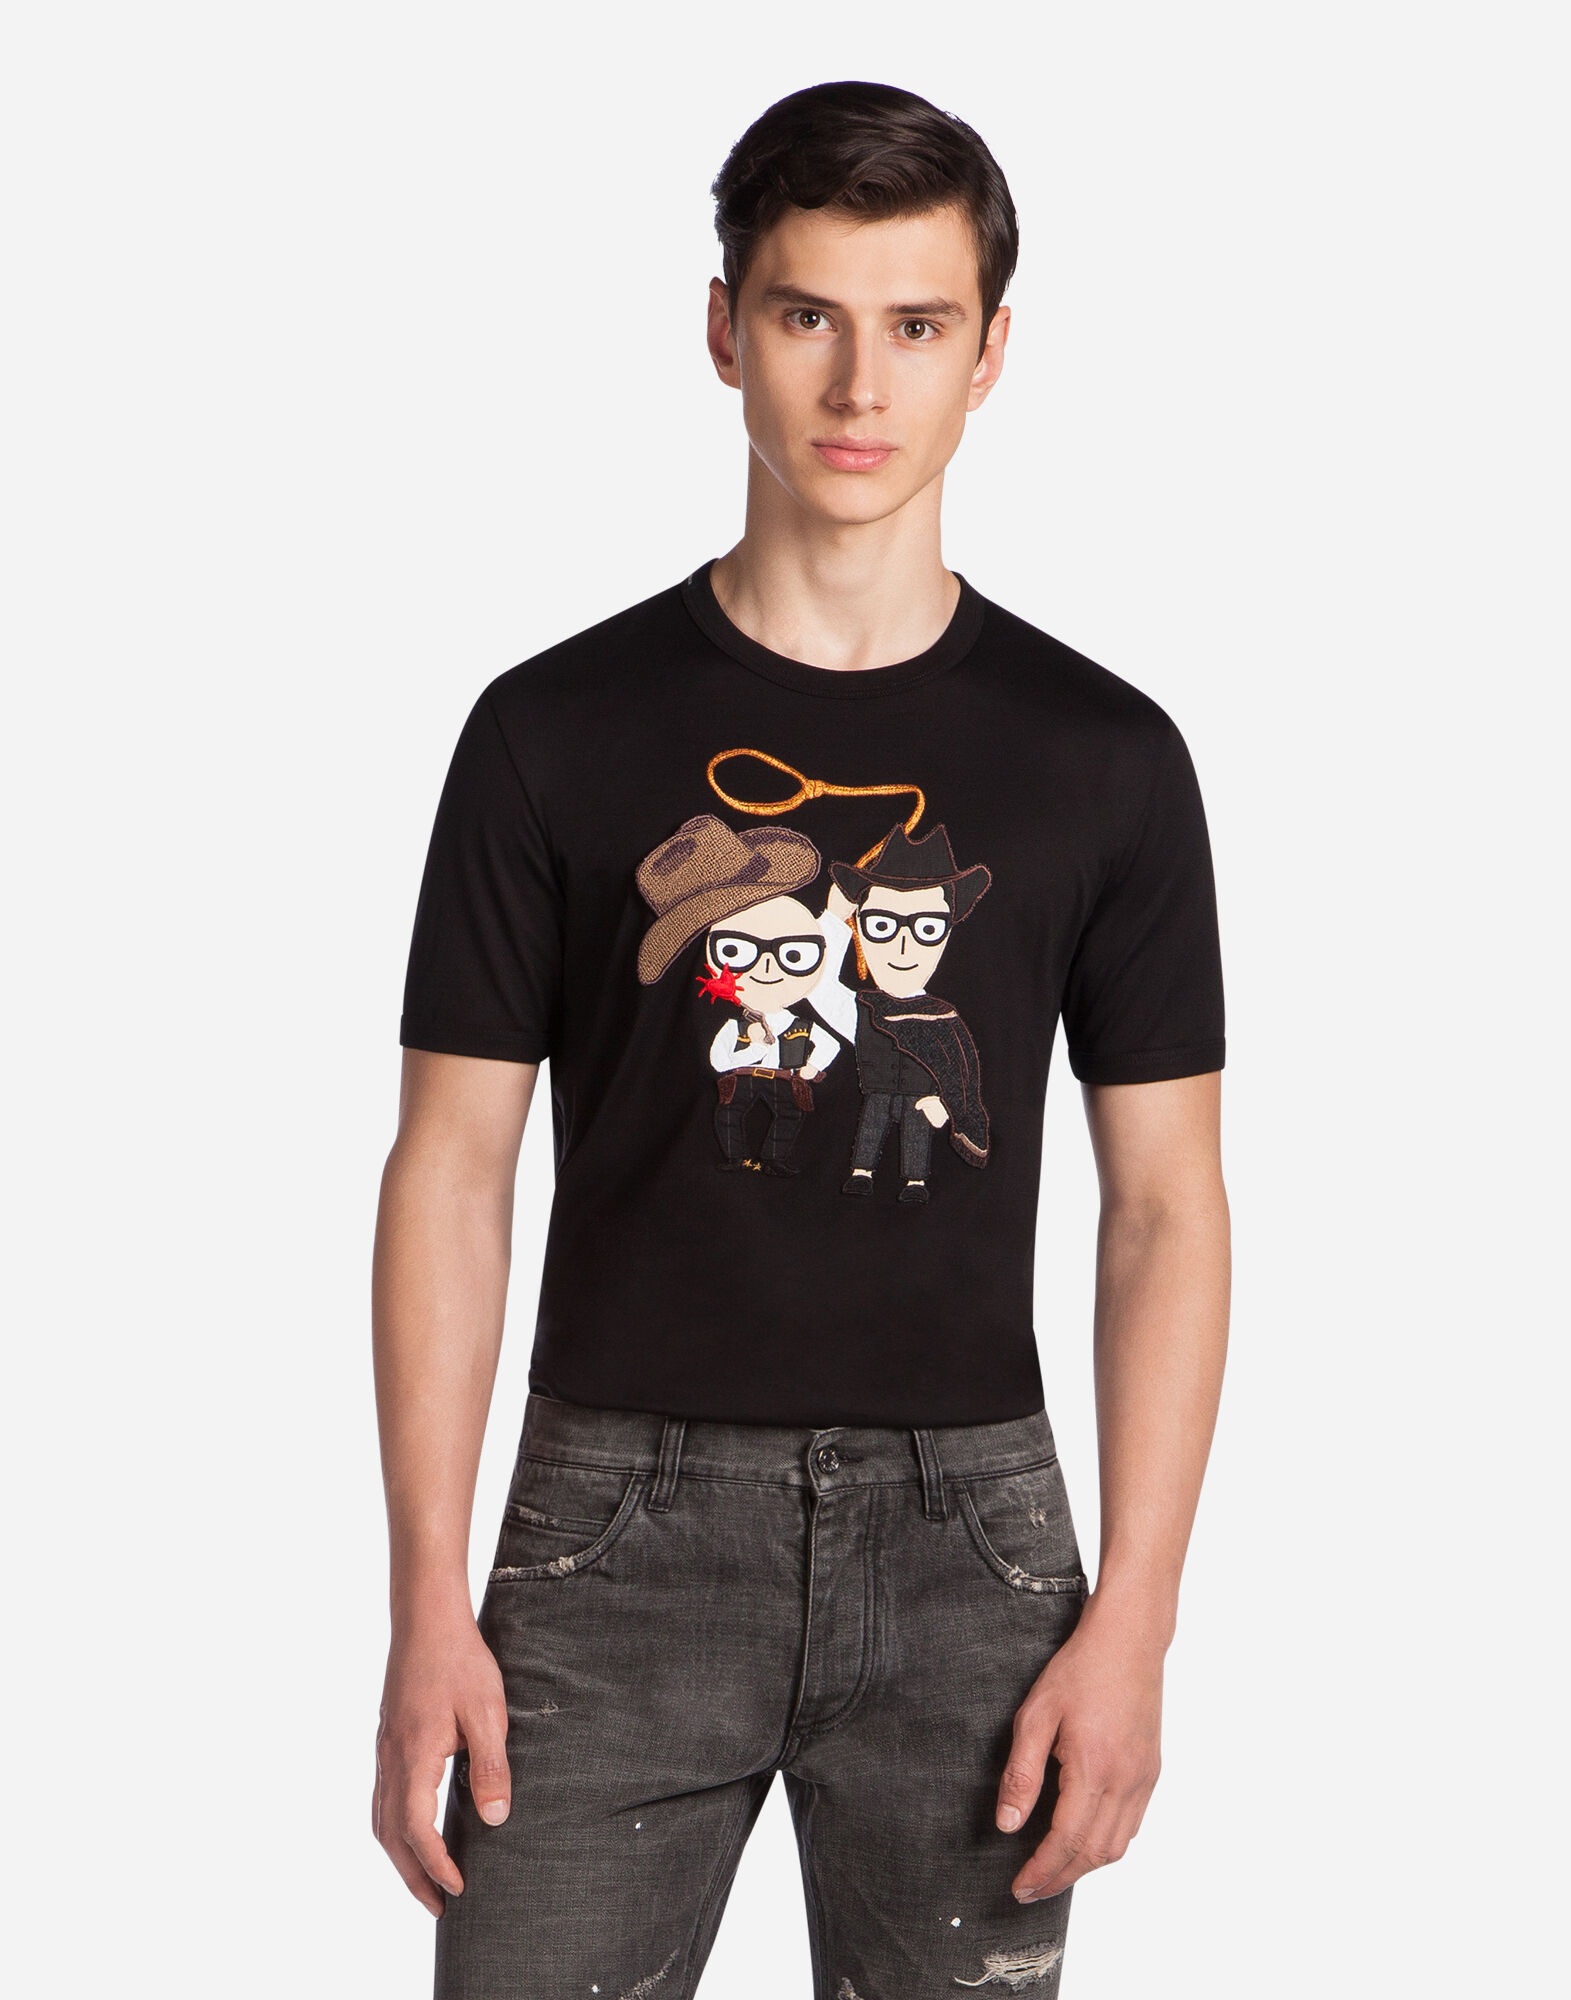 COTTON T-SHIRT WITH PATCH OF THE DESIGNERS